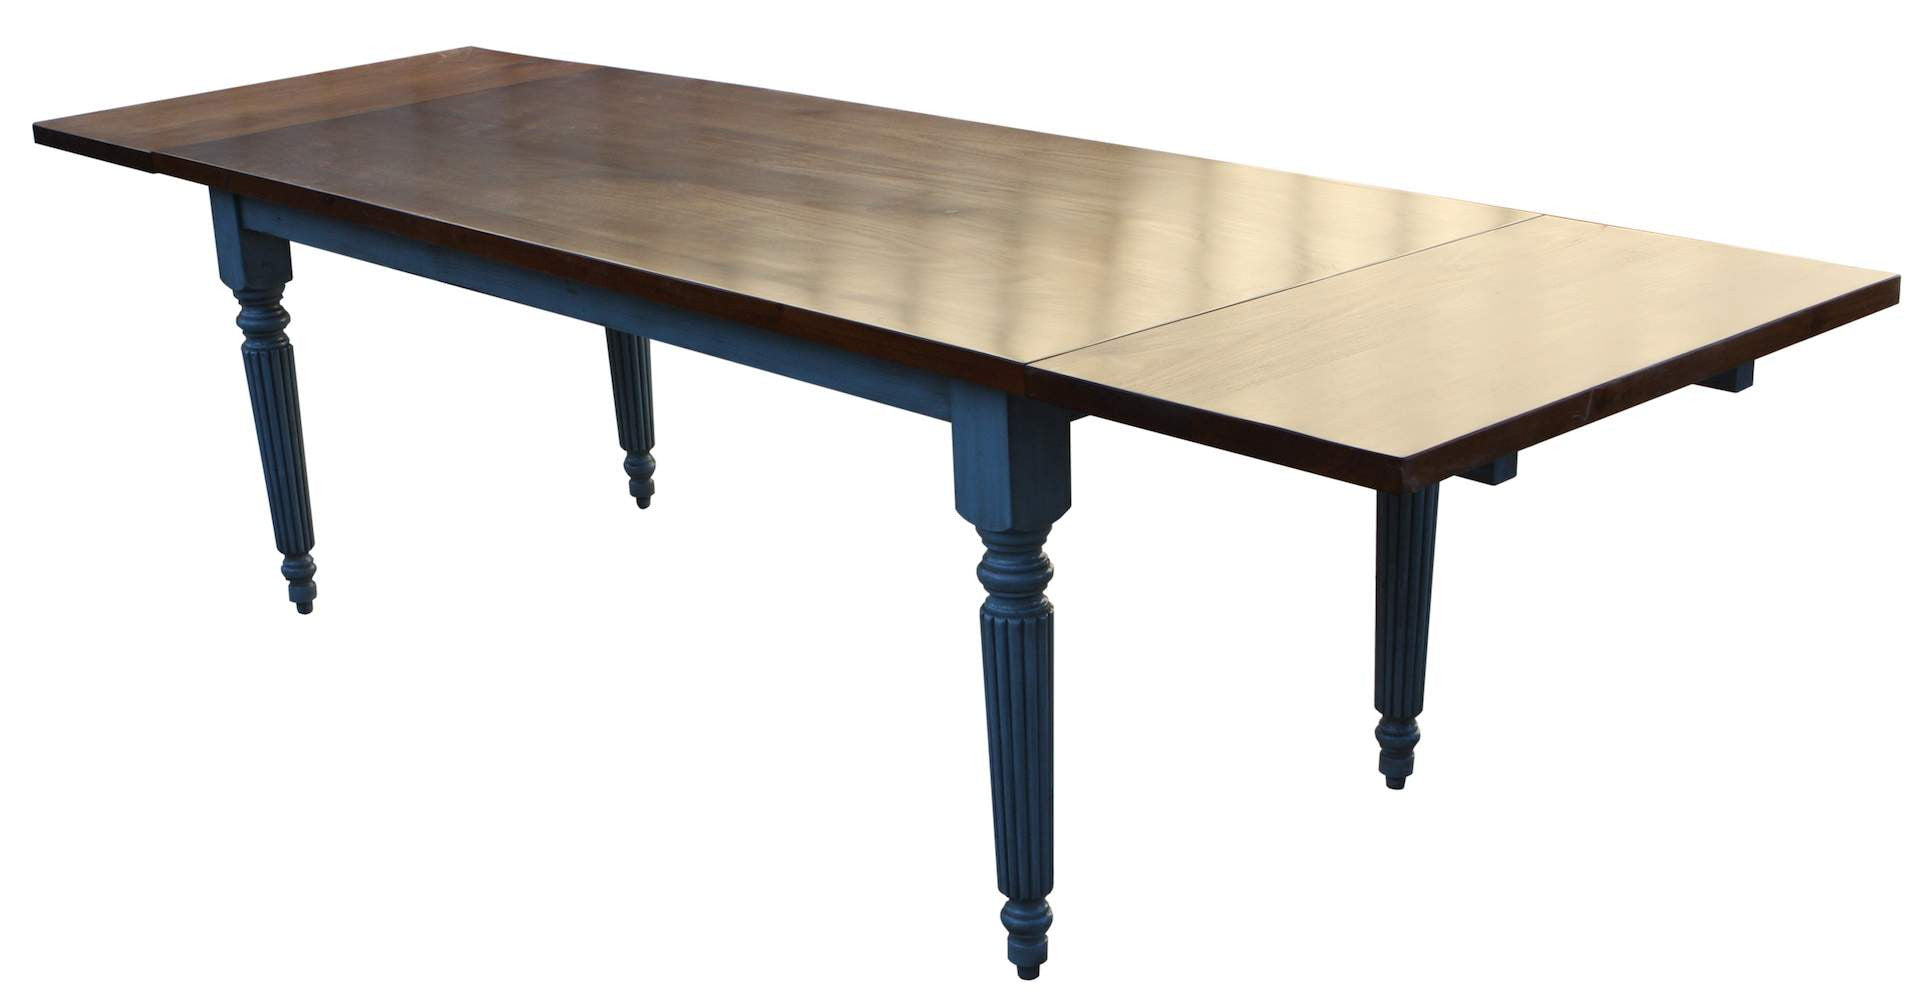 Dinex Alfa Extension Dining Table Tables Scandinavian Designs